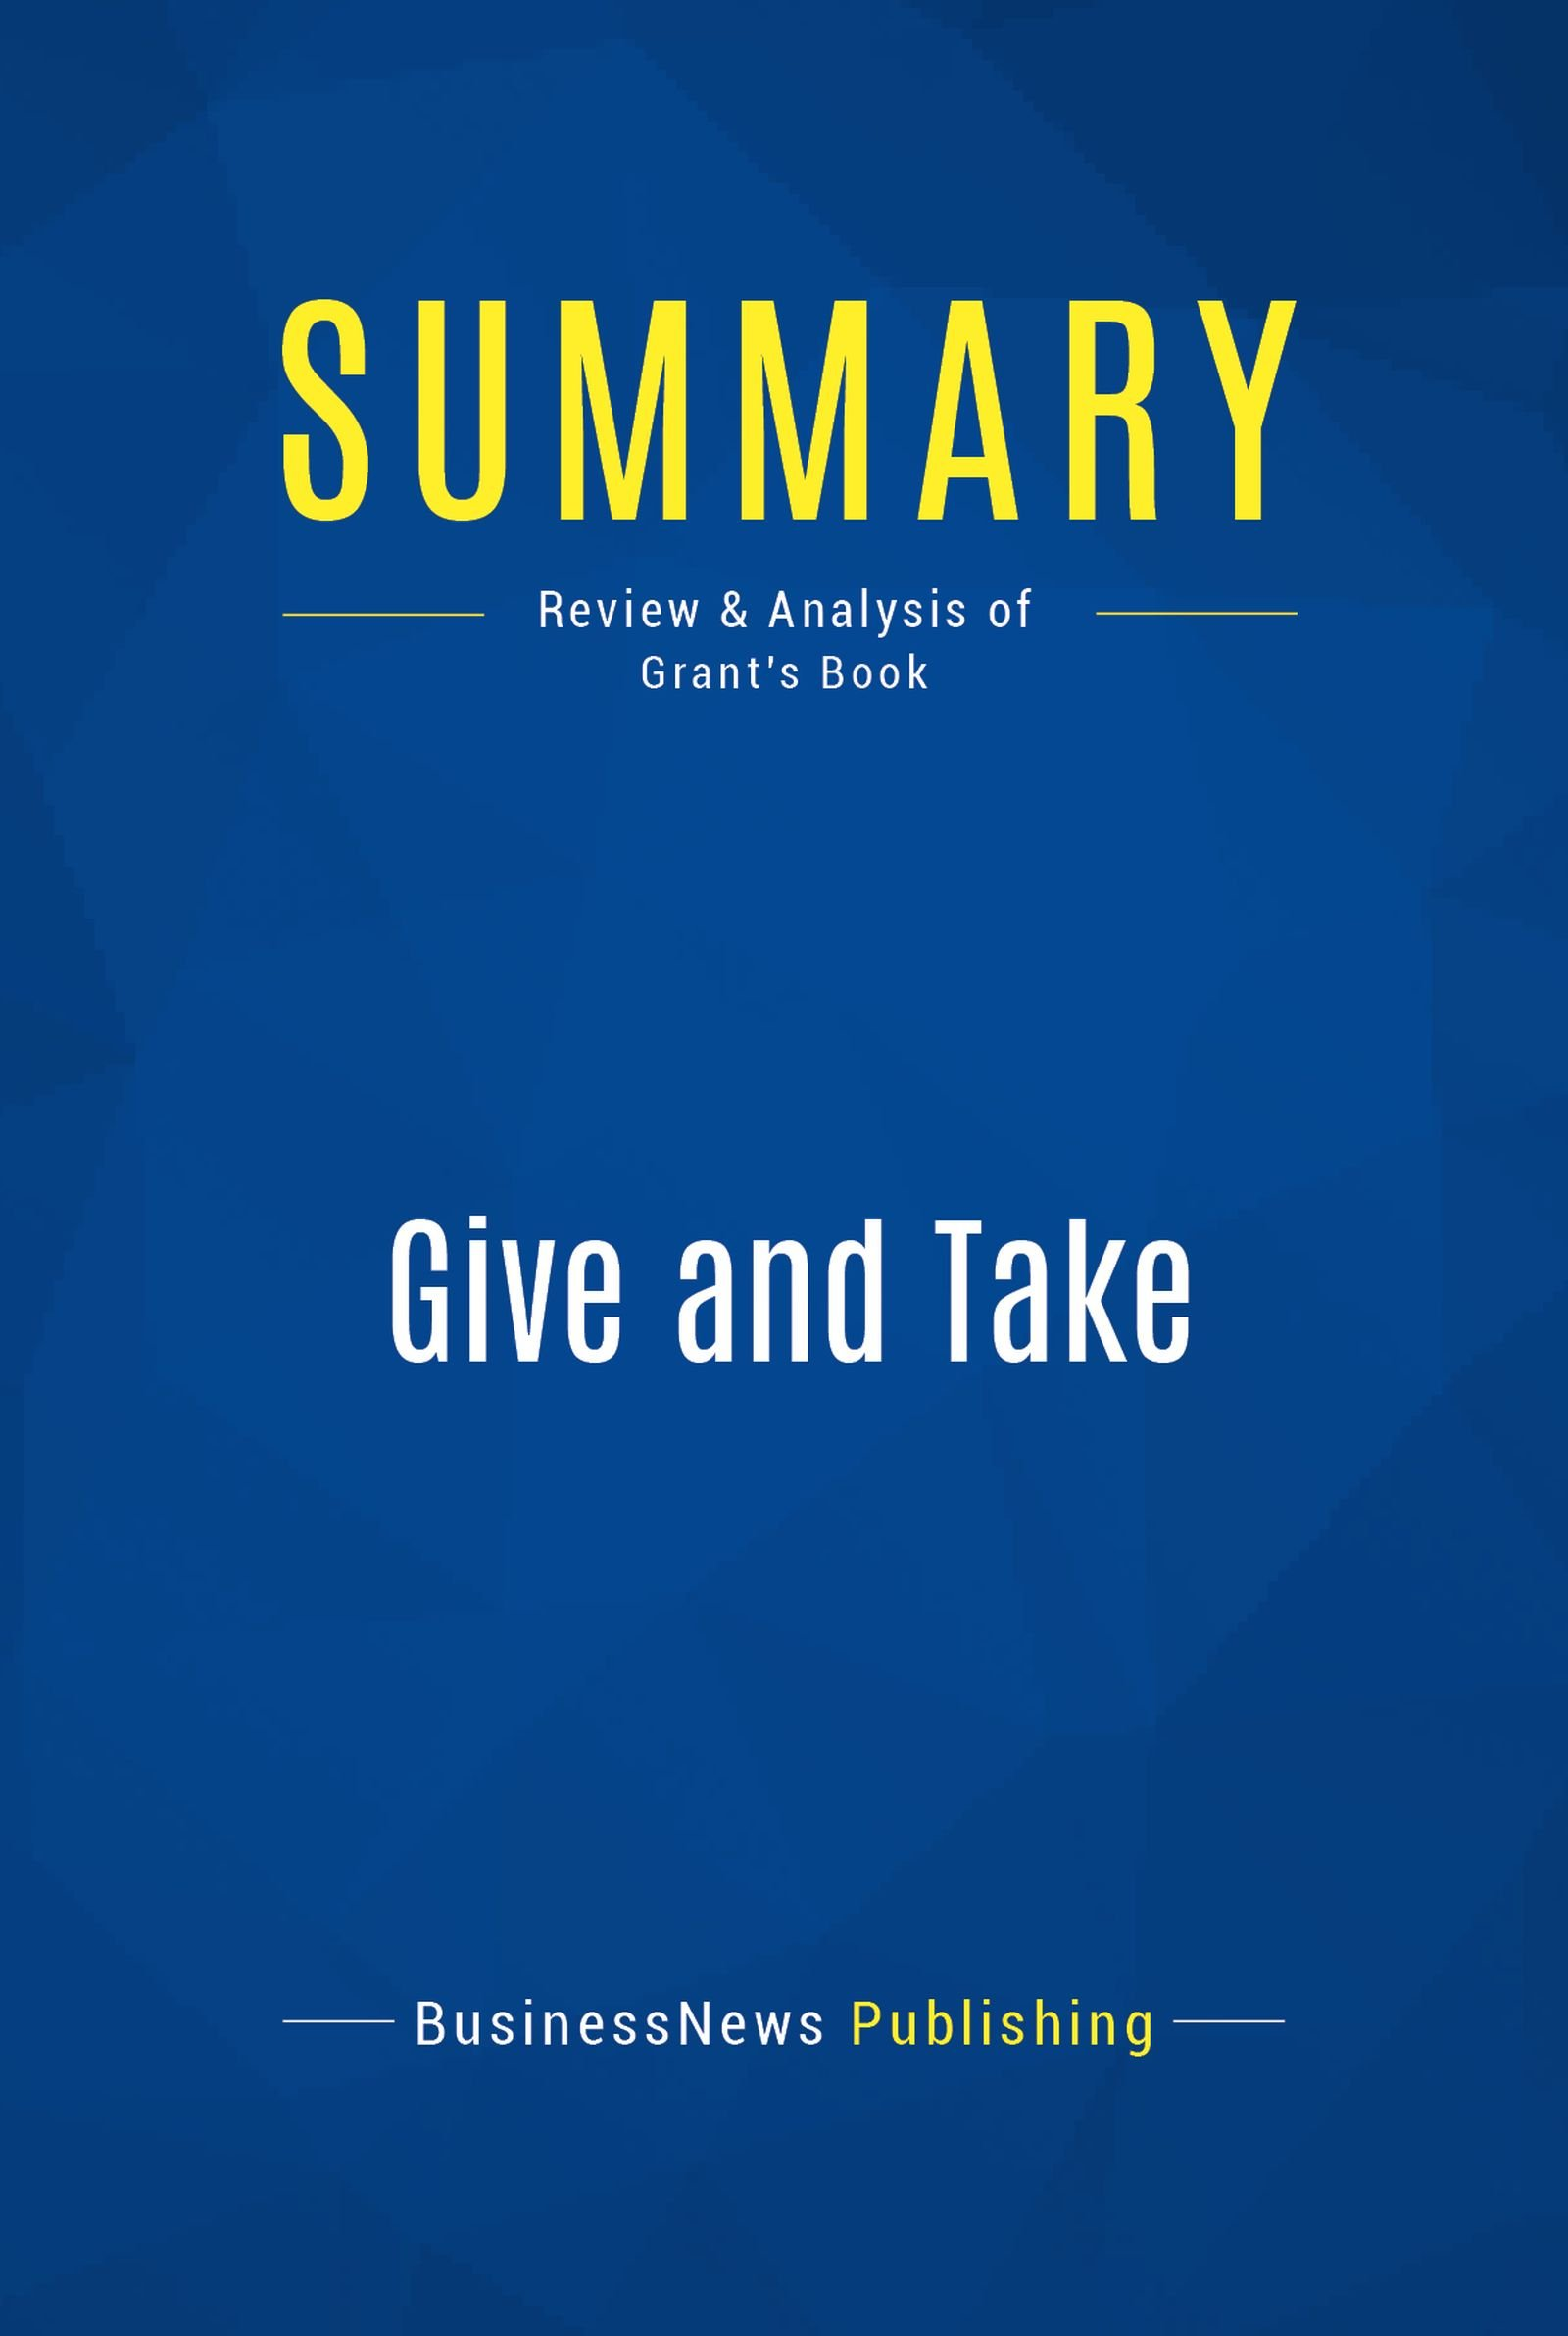 Summary: Give and Take: Review and Analysis of Grant's Book